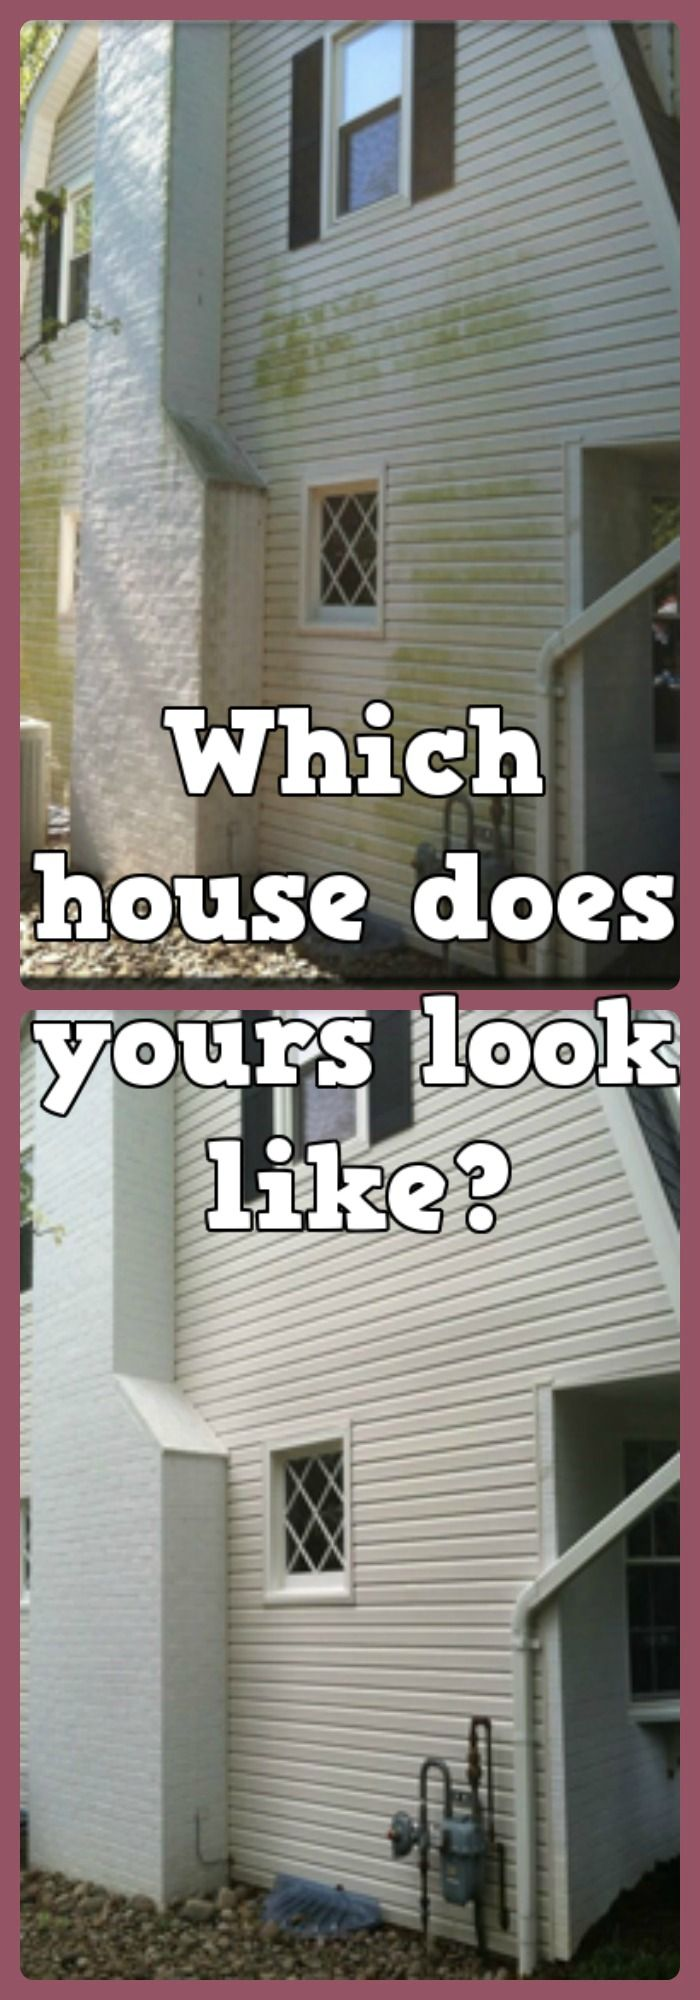 9 best Tampa Exterior House Washing images on Pinterest | House wash ...